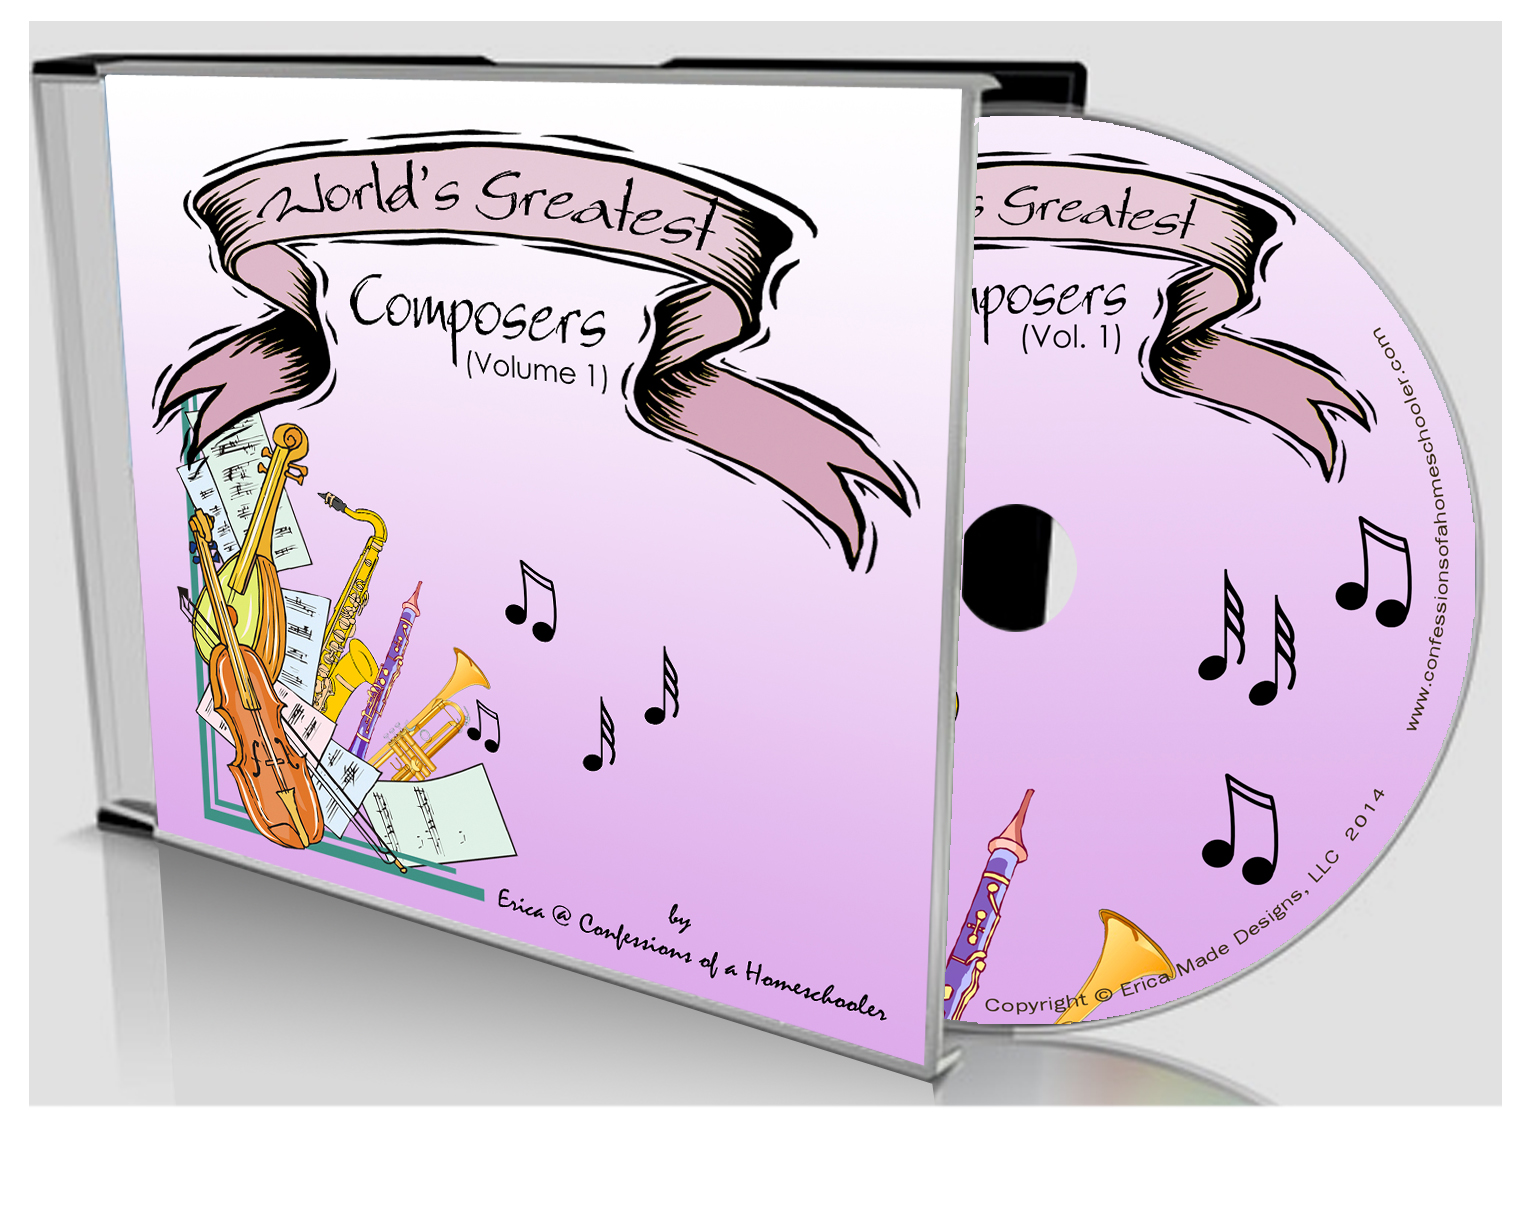 World's Greatest Composers Vol 1 - CD